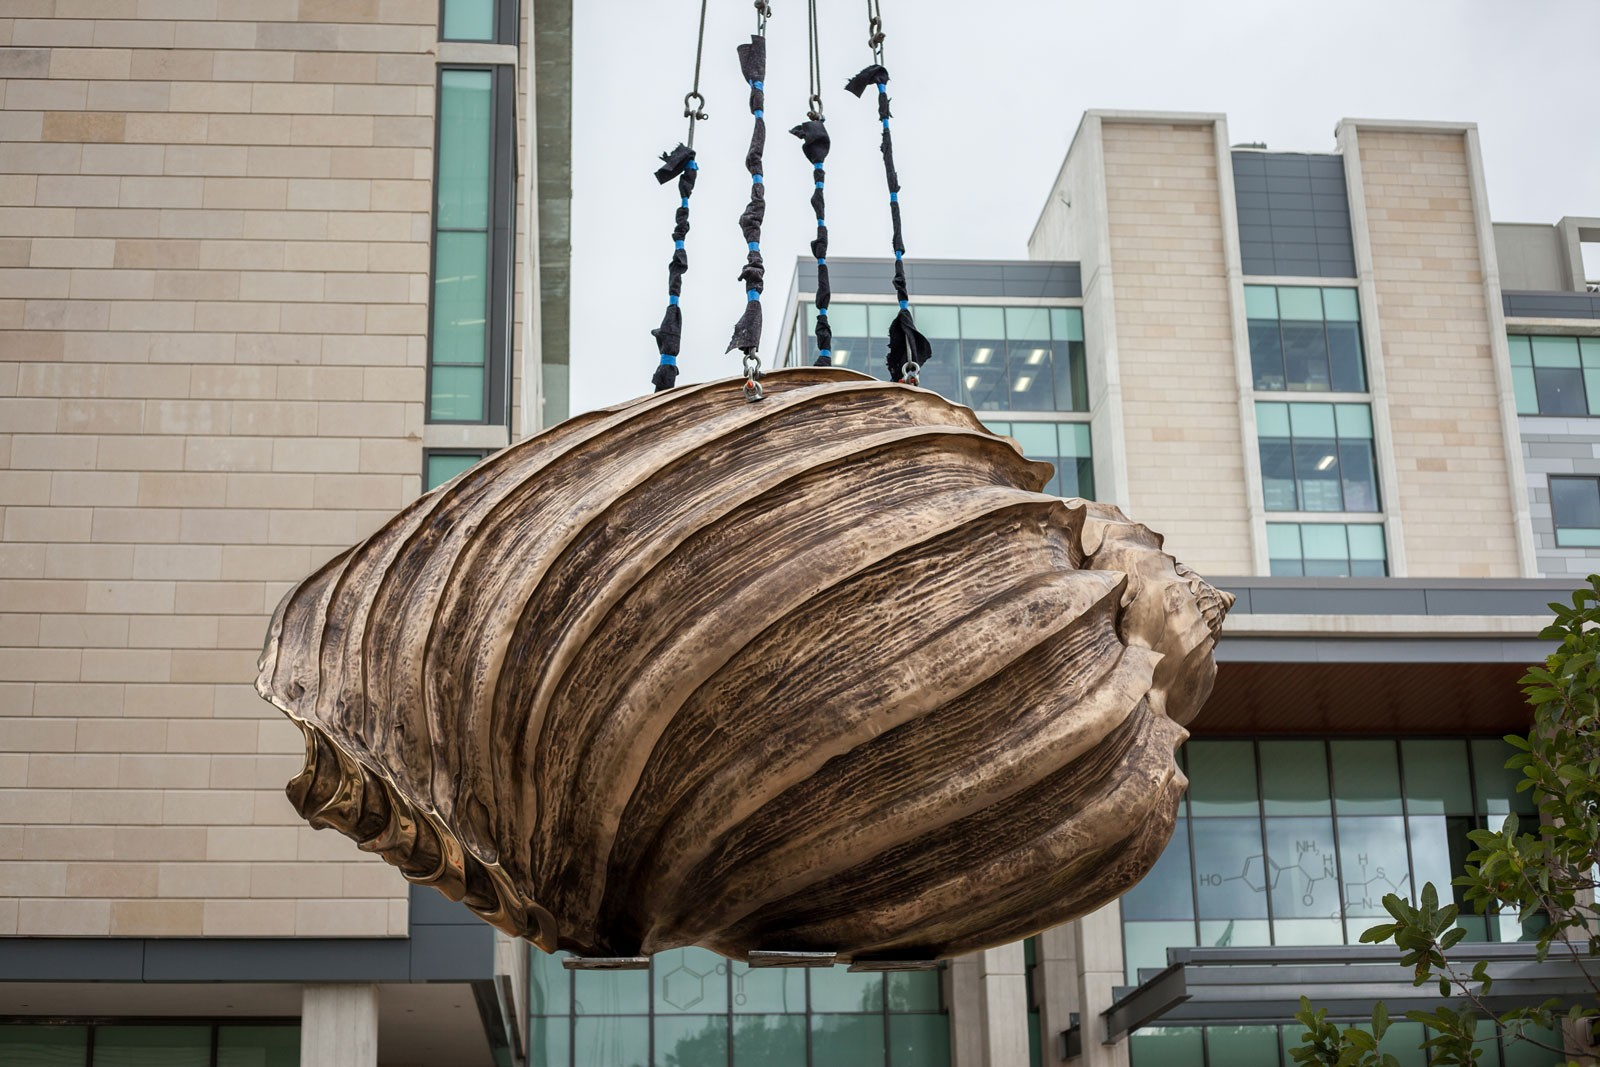 A large bronze shell sculpture hanging from a crane